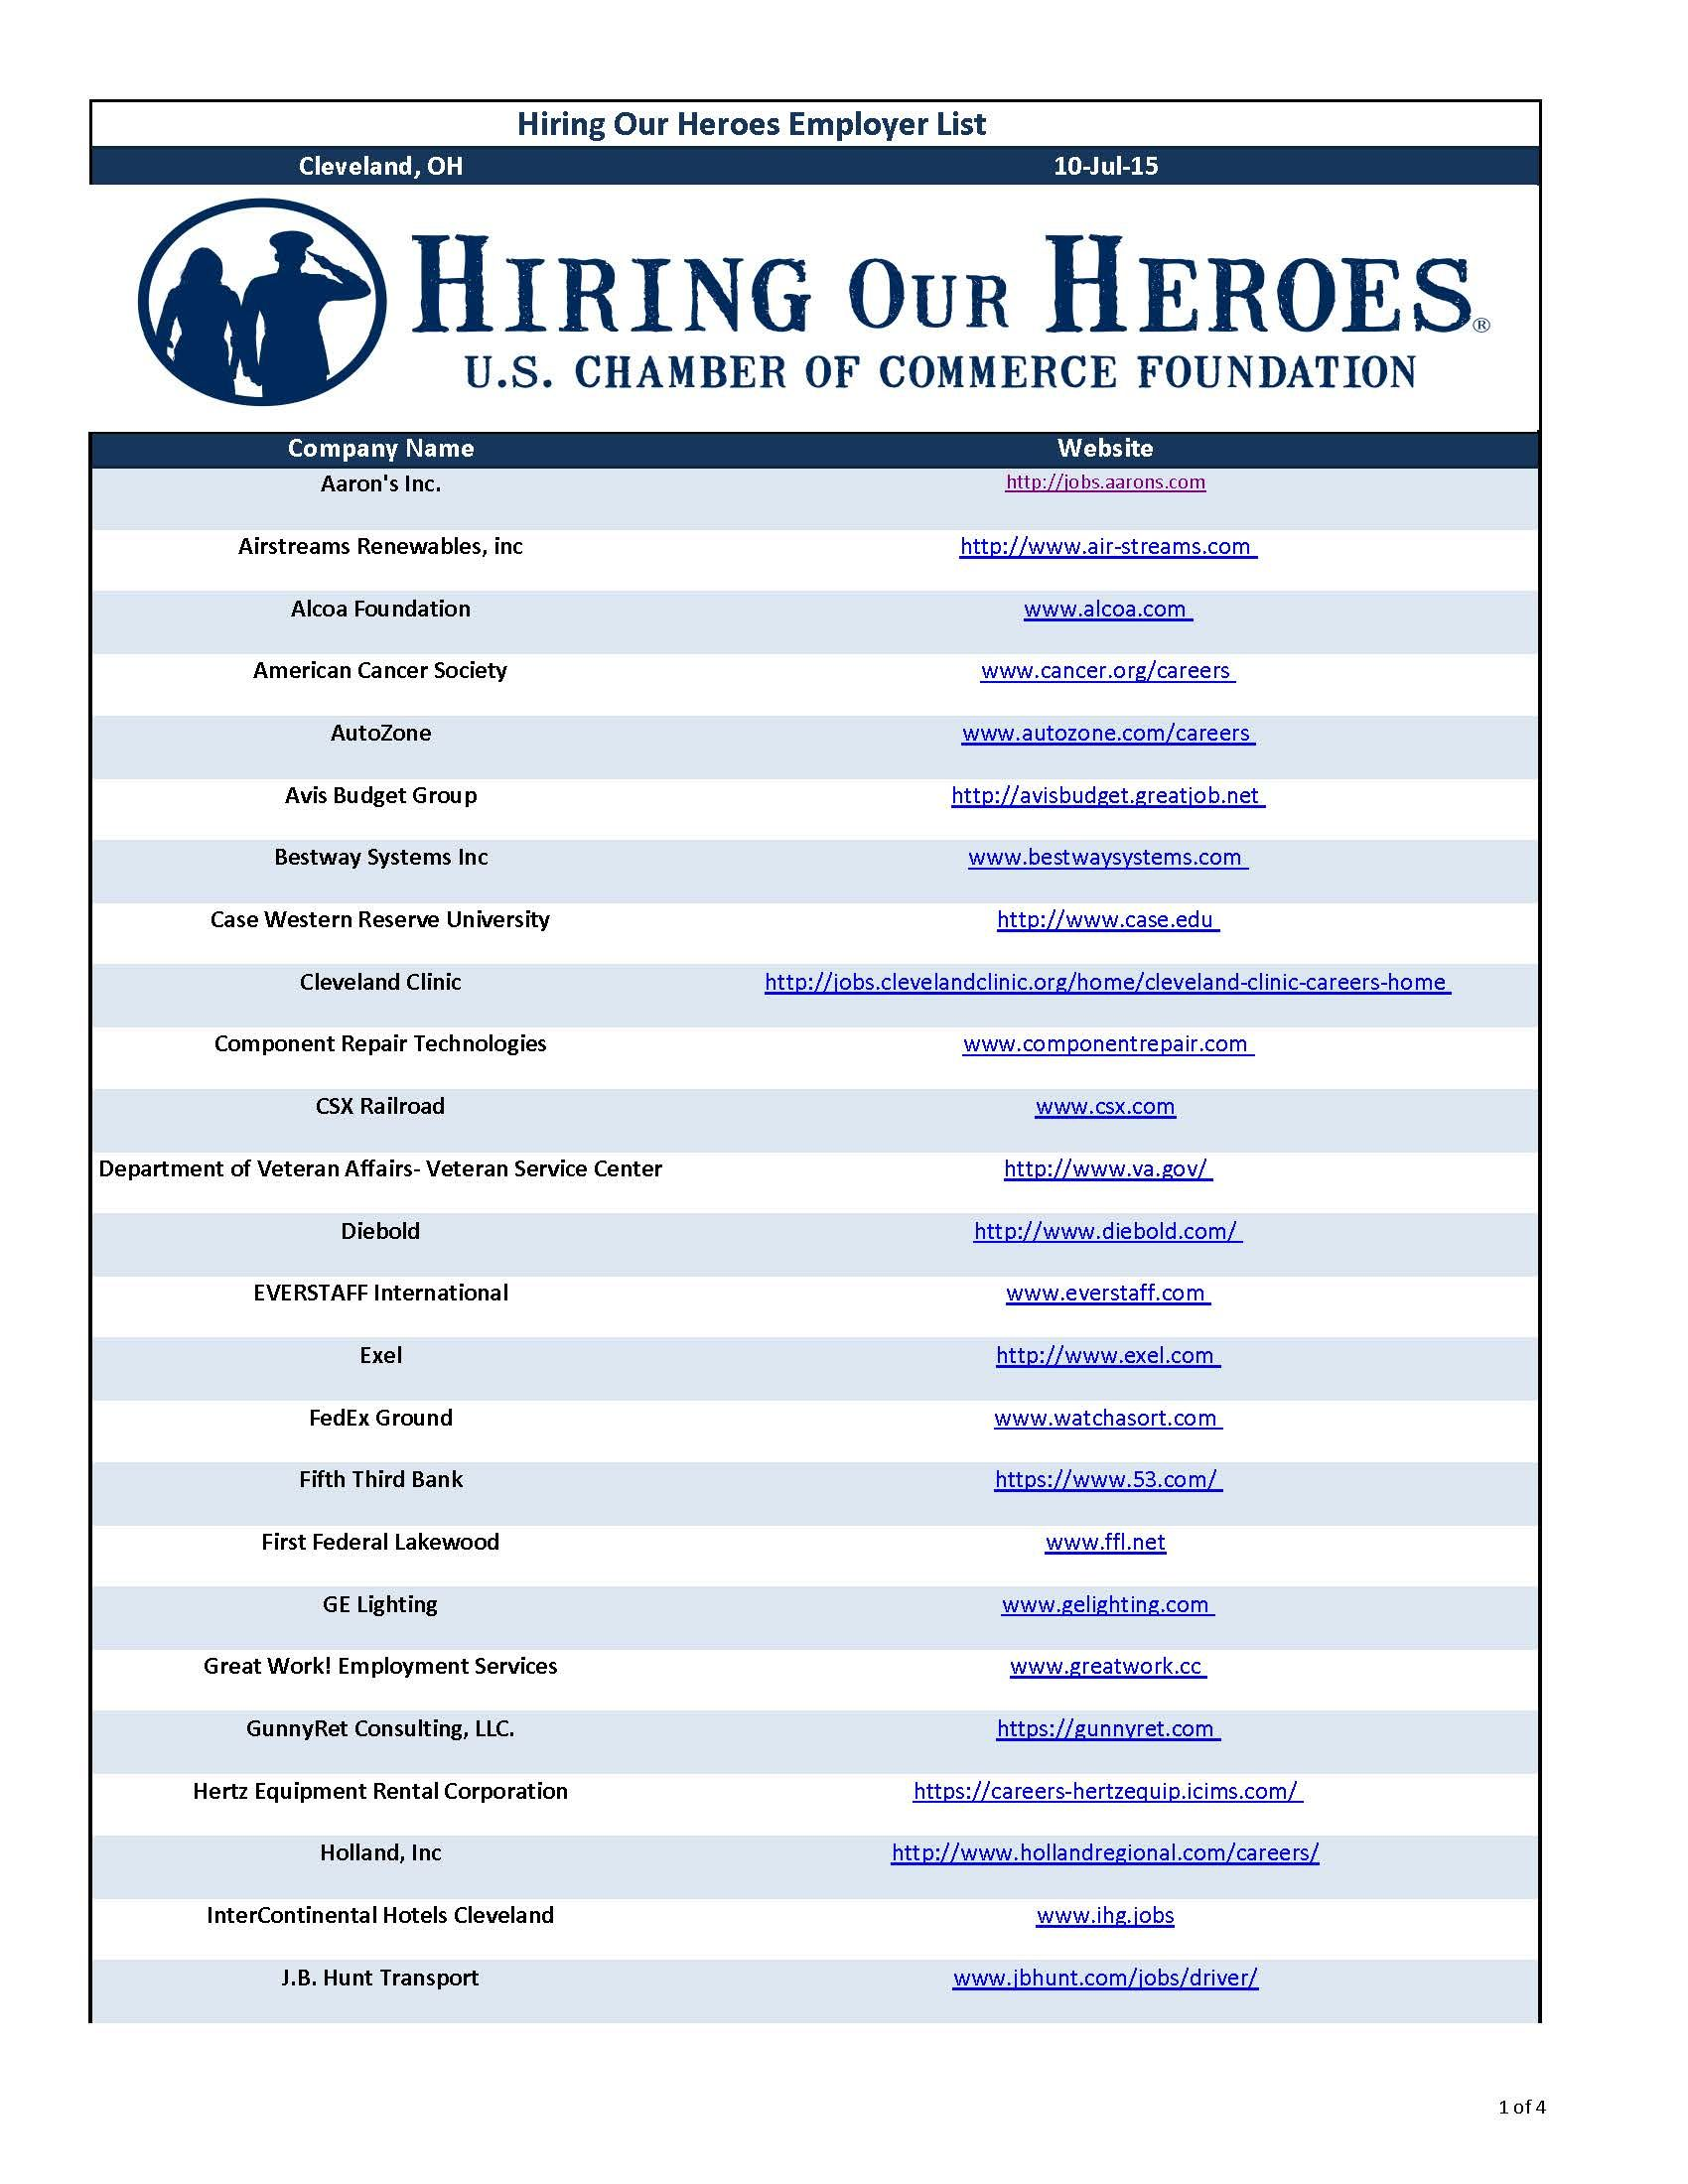 Hiring Our Heroes Hiringfair July 10 In Cleveland A Workshop For